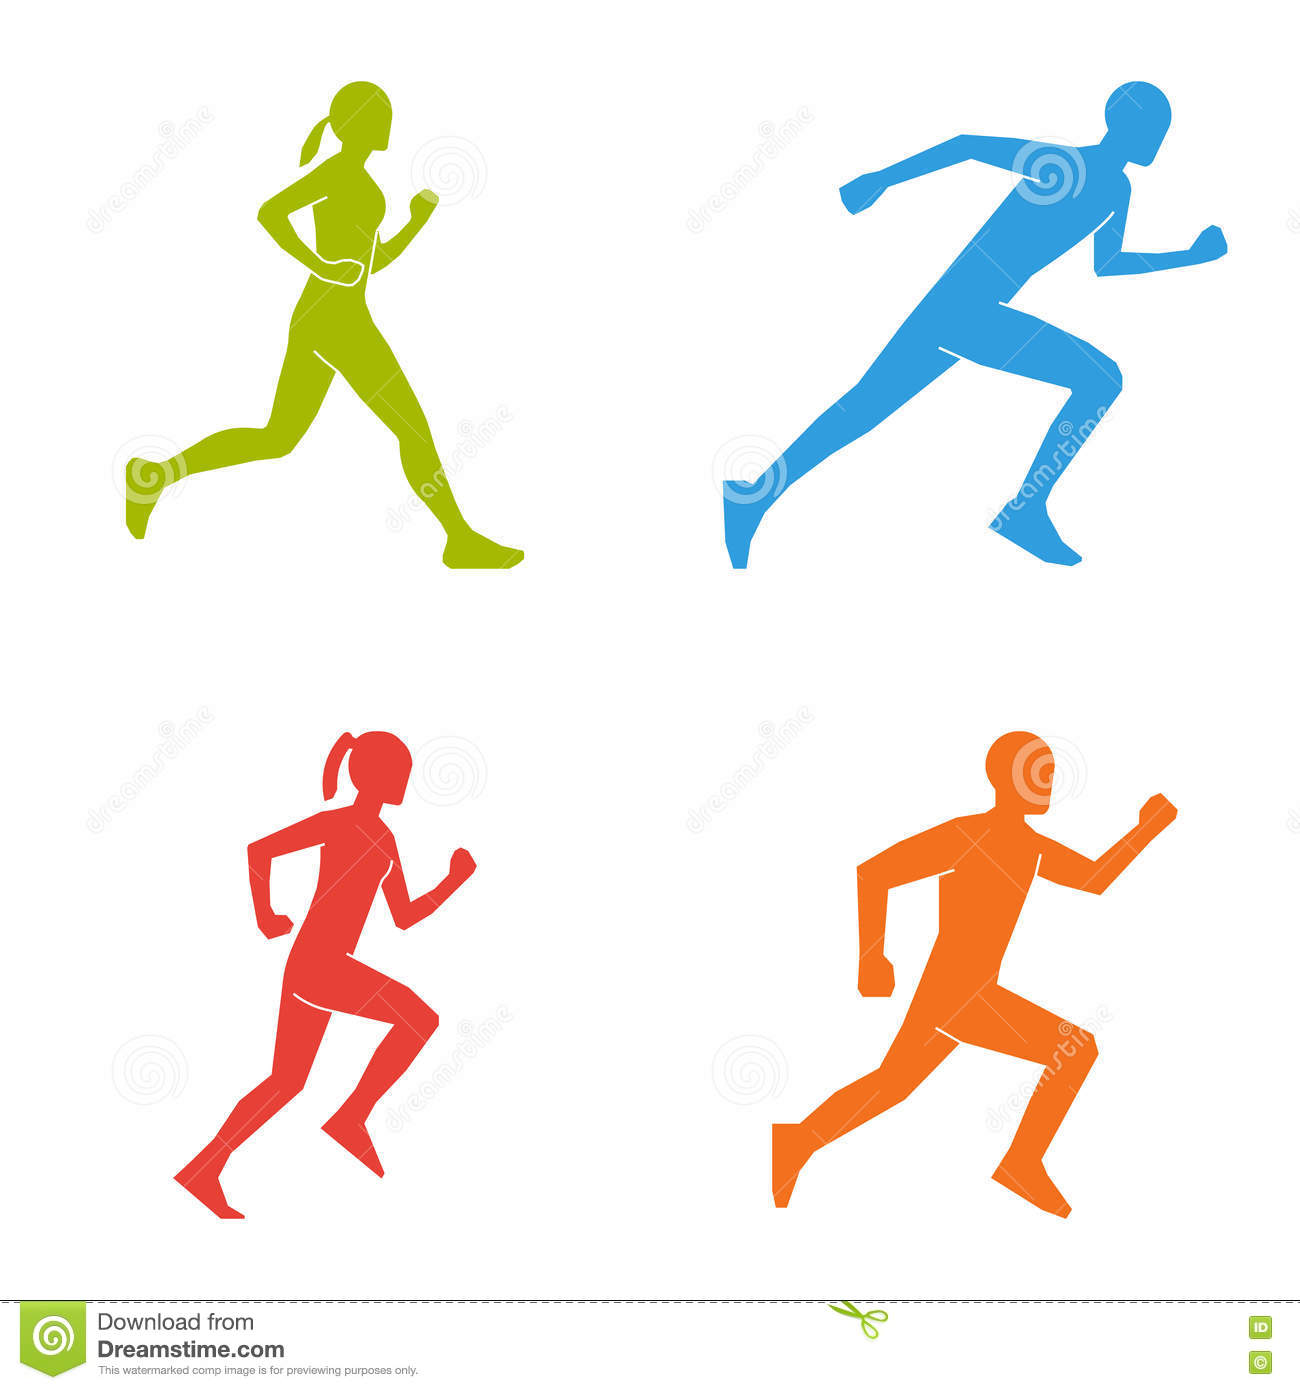 Colored silhouettes of runners. Flat figures marathoner.